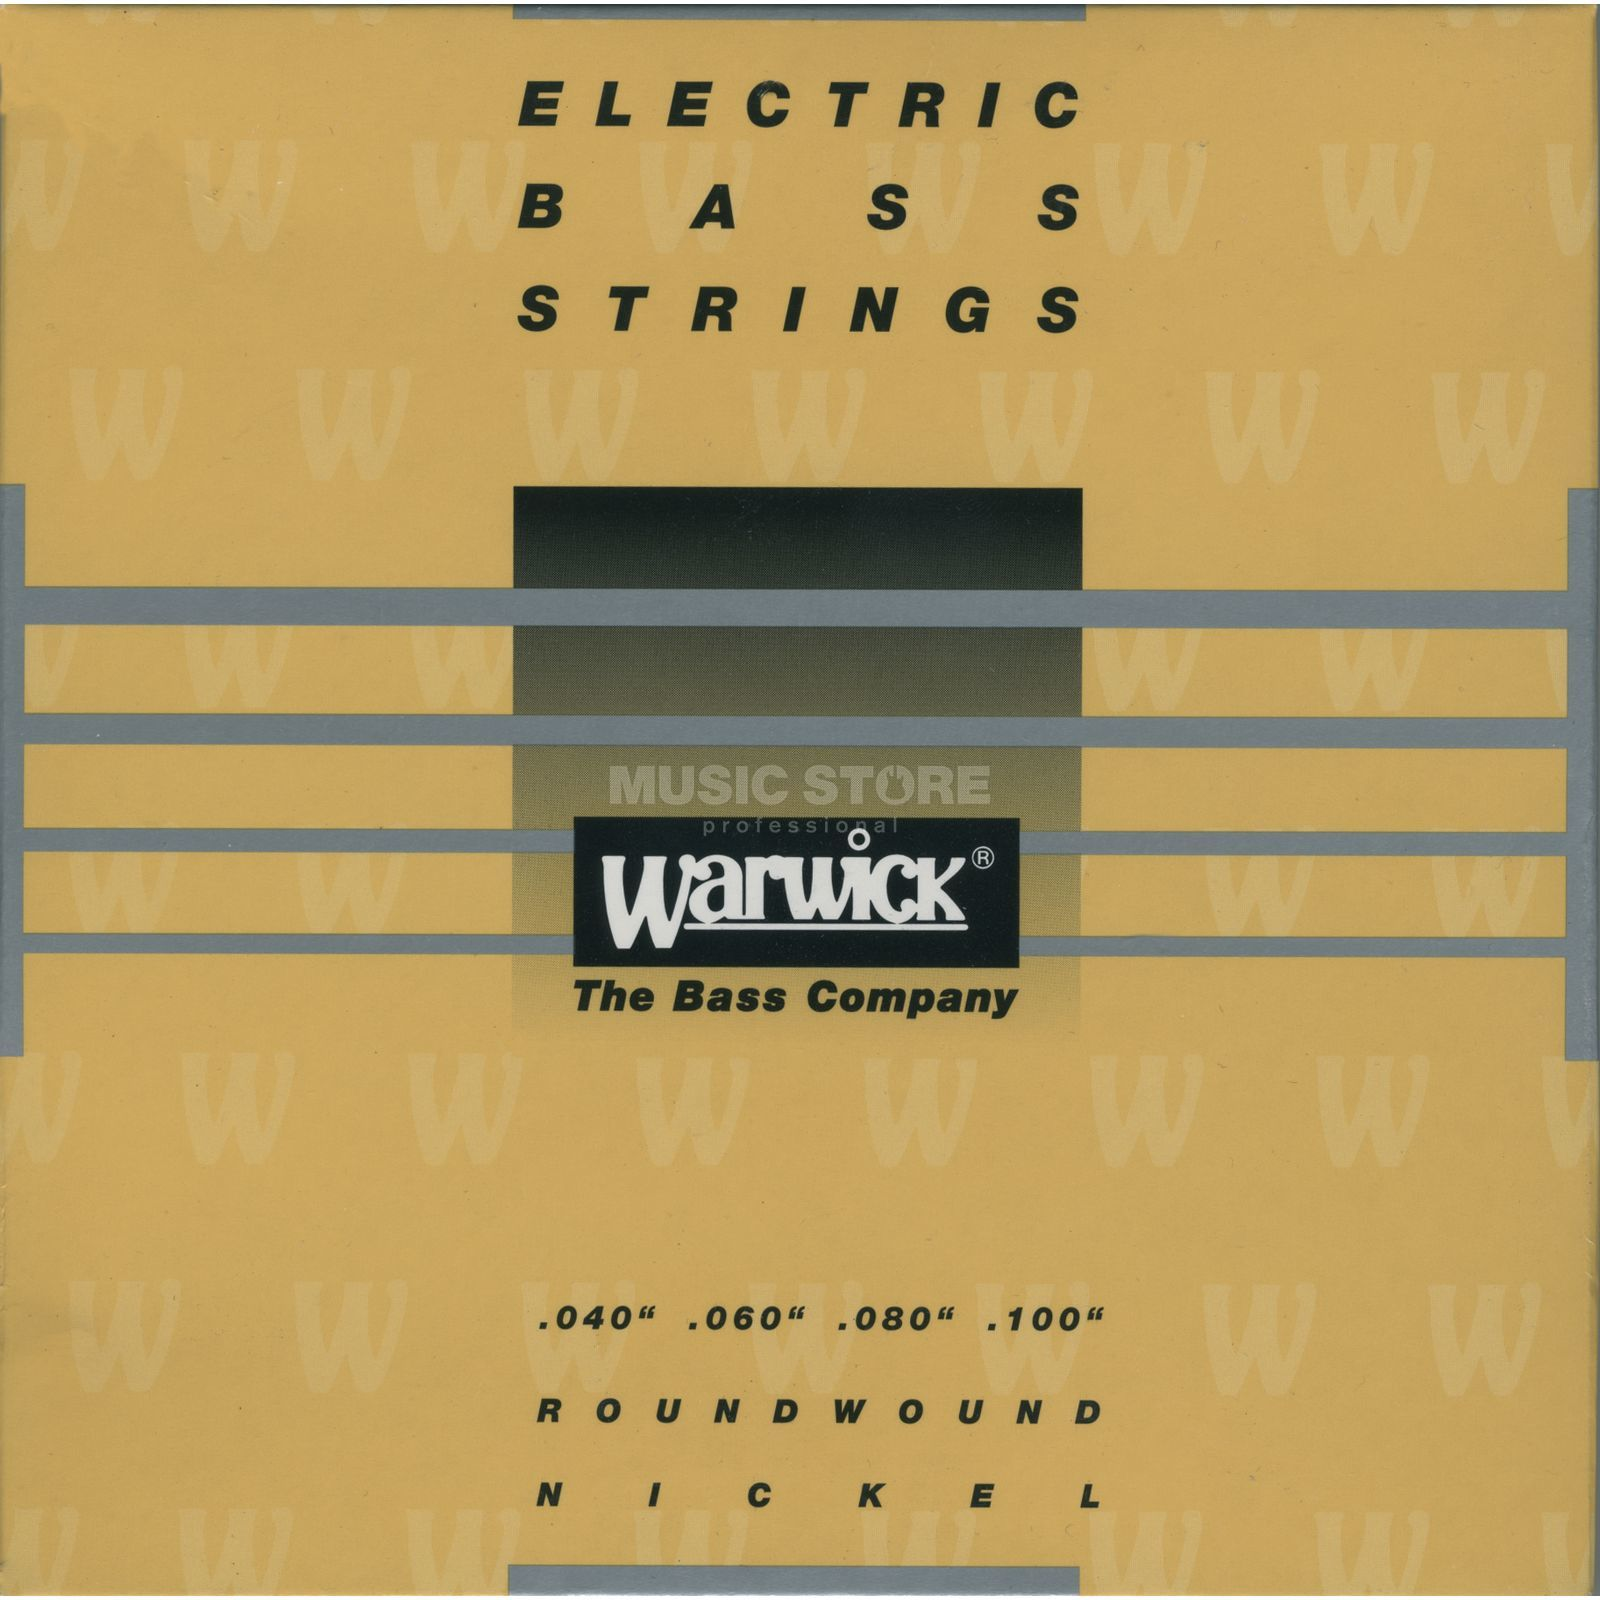 Warwick Bass Strings, 40-100,Yellow 4 String Set, Nickel Strings Zdjęcie produktu